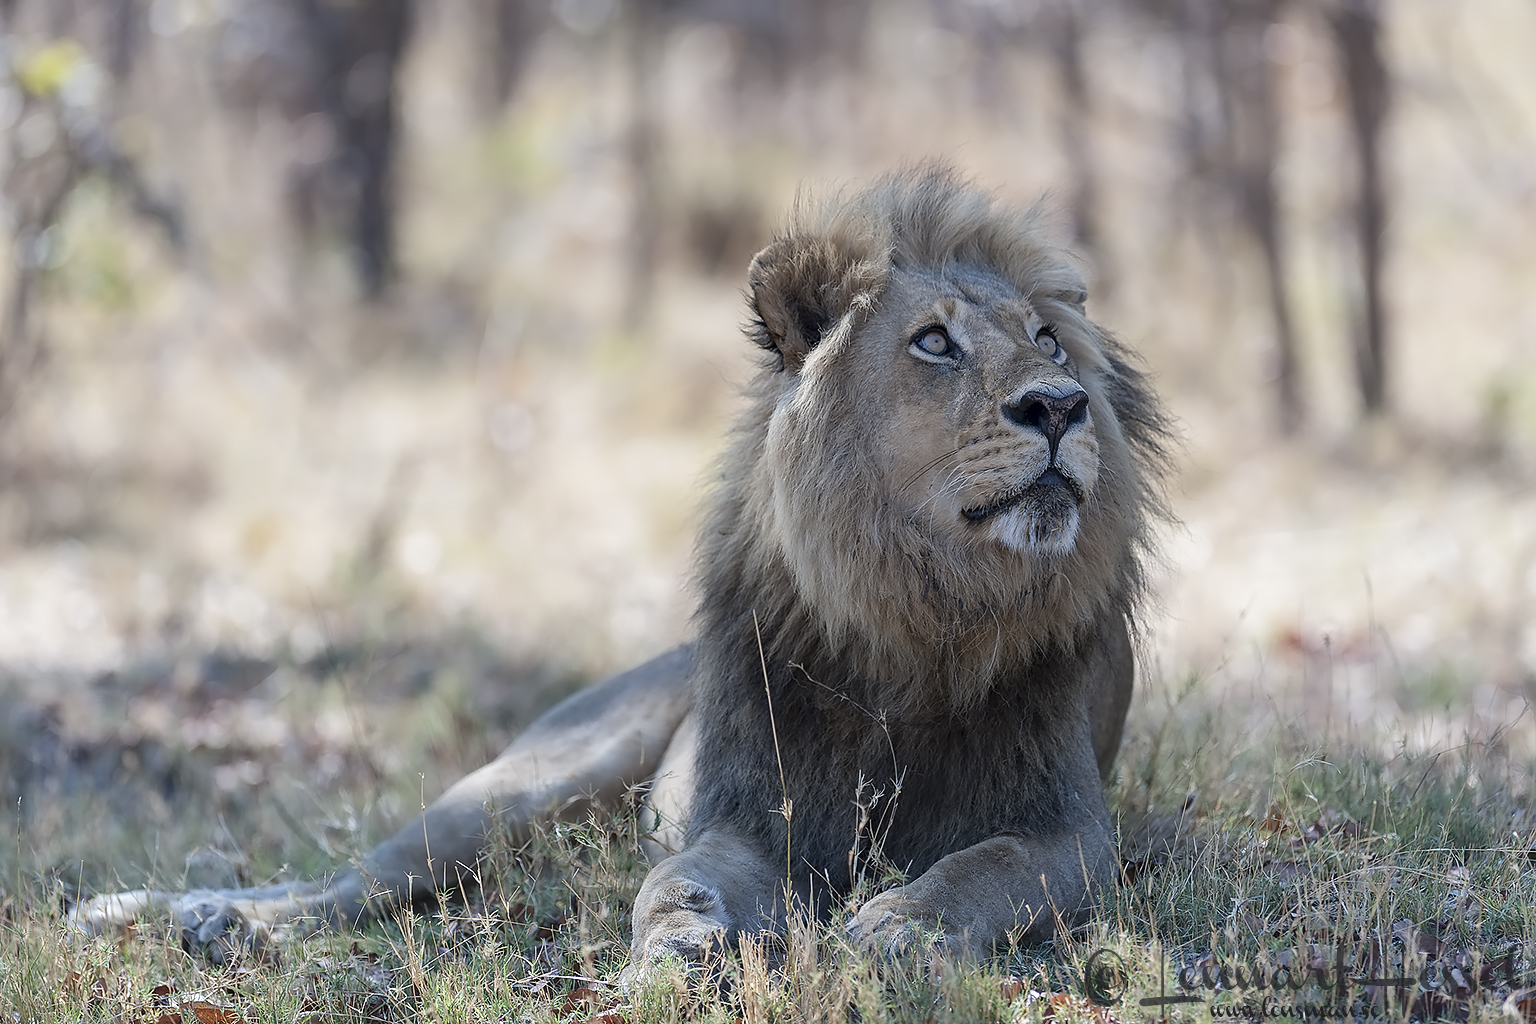 Lion in Moremi Game Reserve, Botswana - animal - Mazda